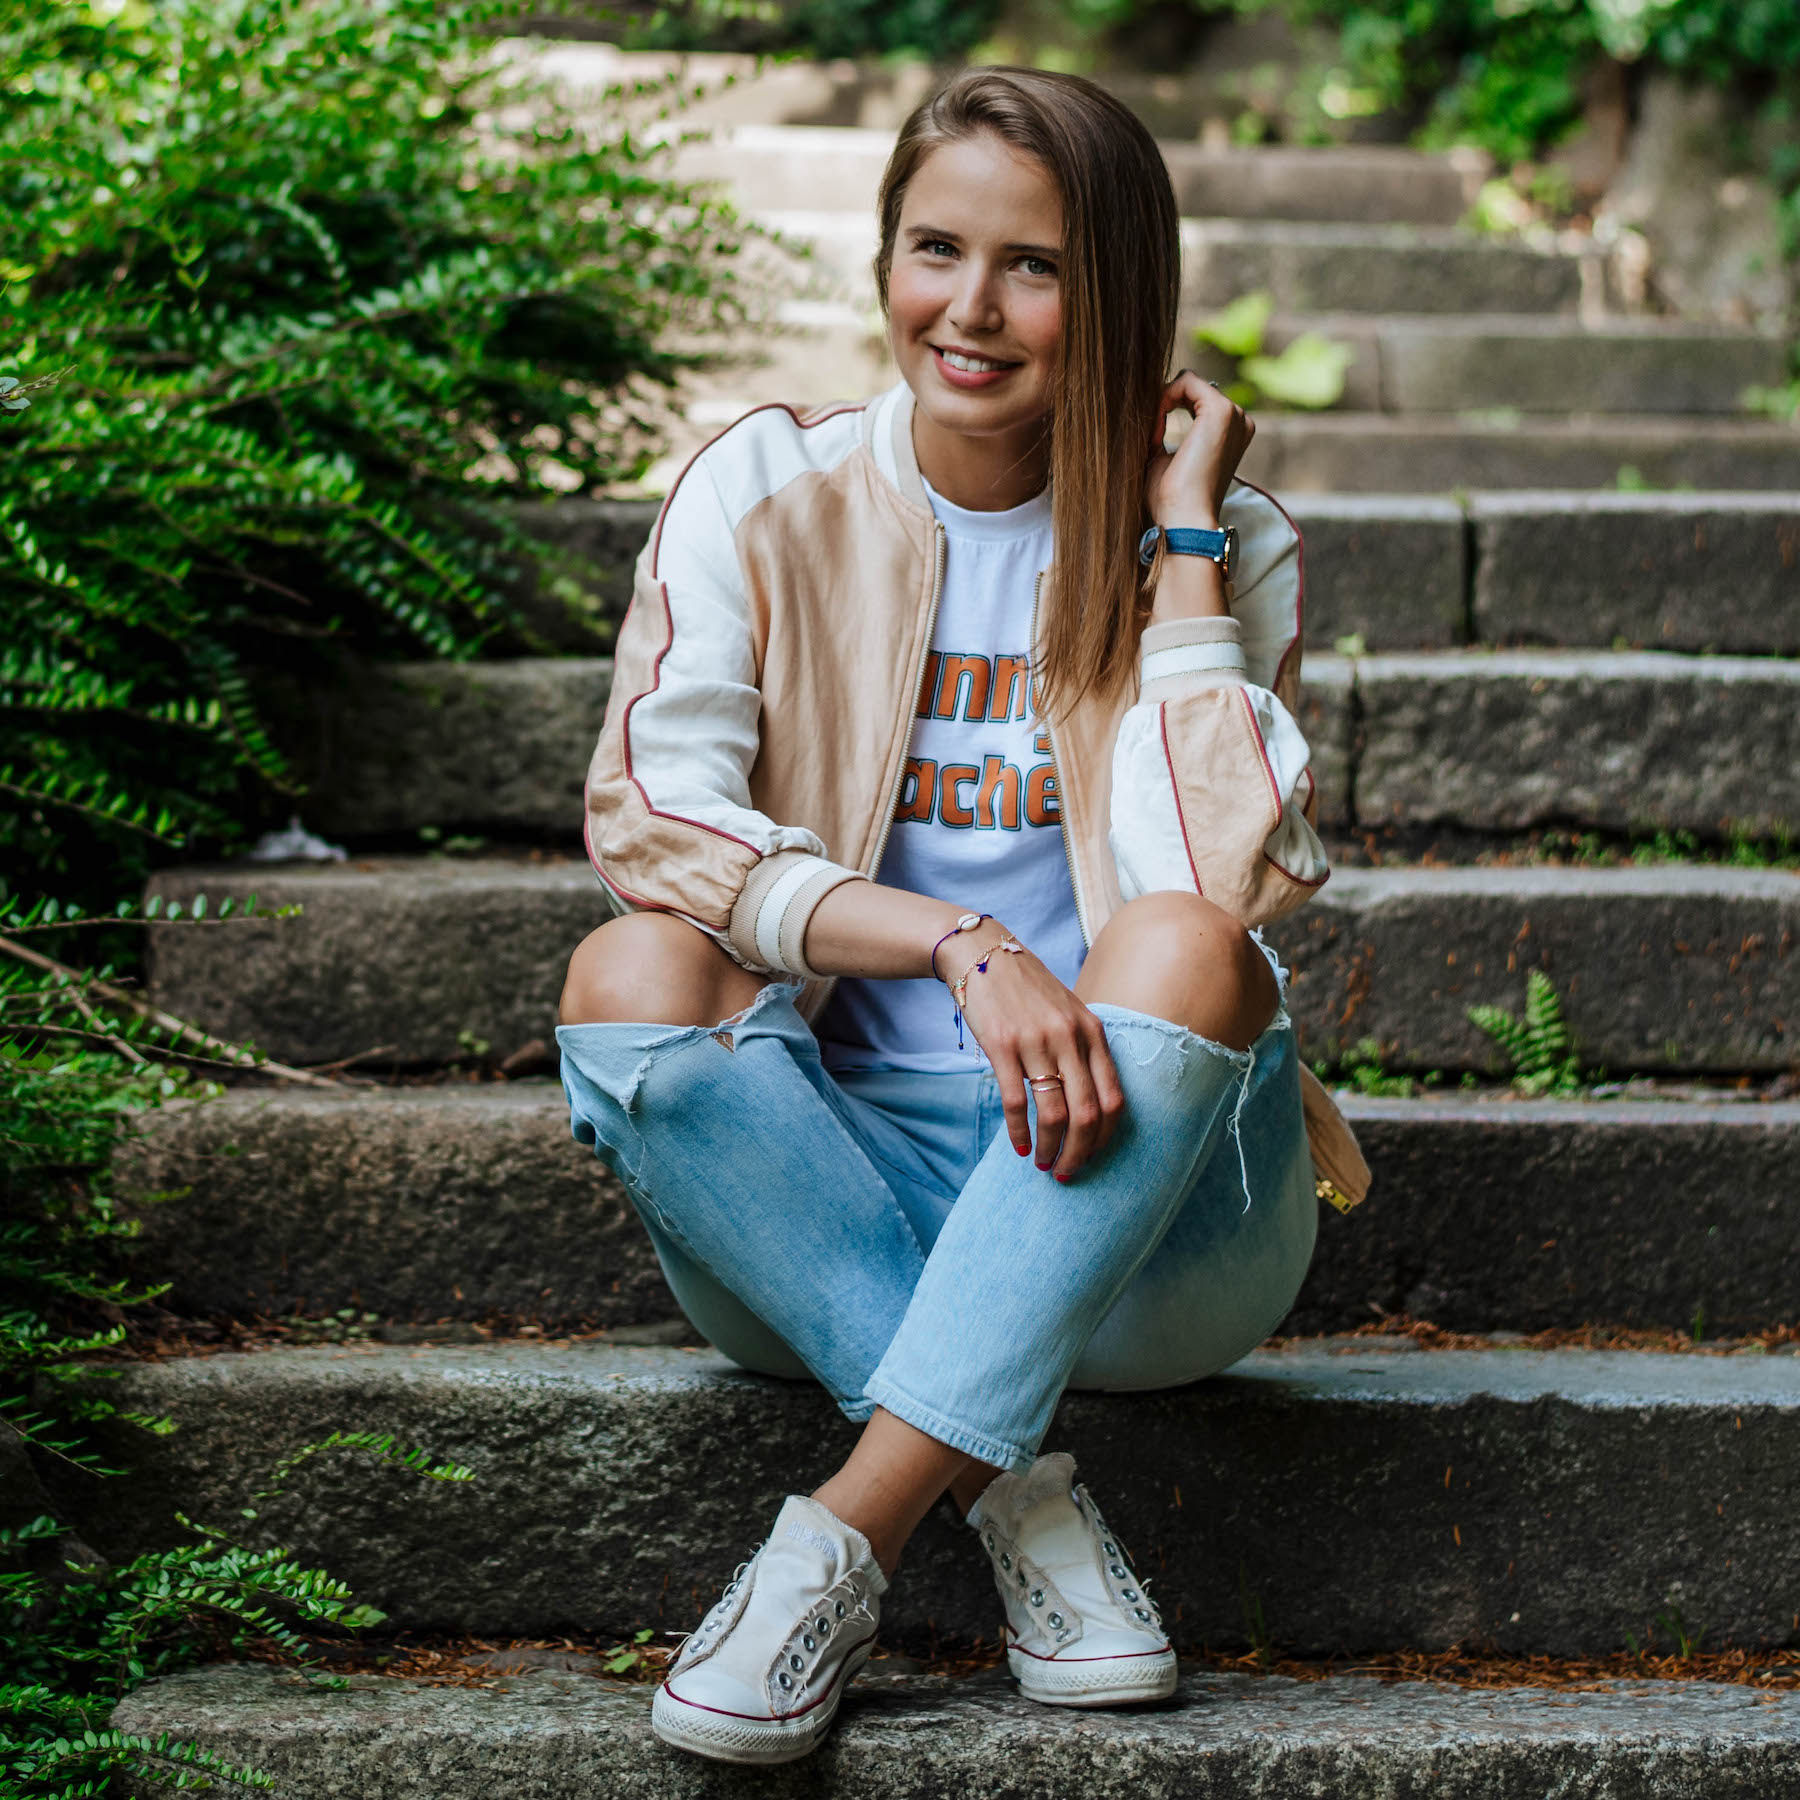 sommer-outfit Hamburg suelovesnyc_susan_fengler_sommer_outfit_closed_wendejacke_sunny_beaches_ganni